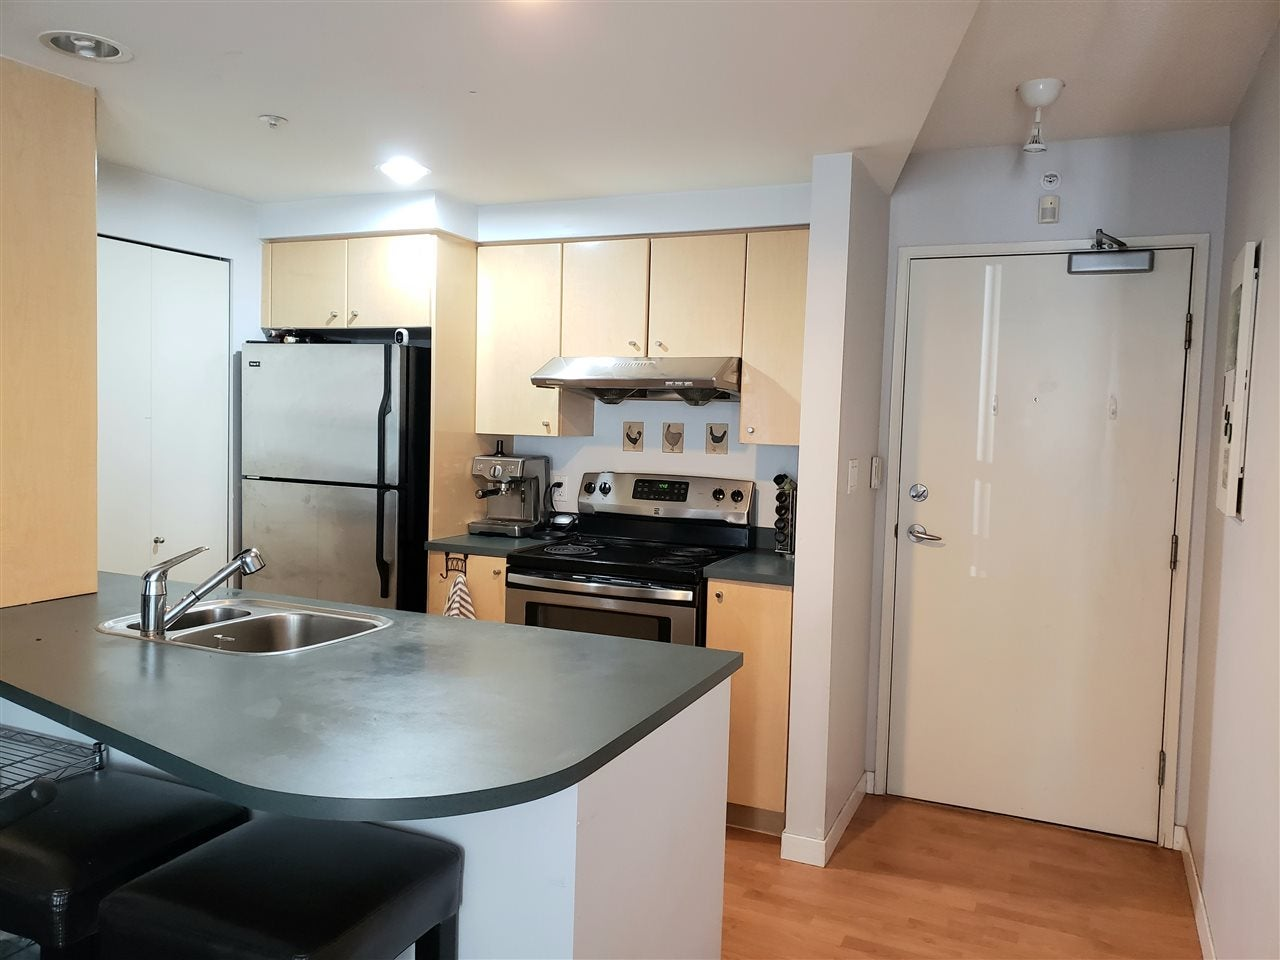 1501 1009 EXPO BOULEVARD - Yaletown Apartment/Condo for sale, 1 Bedroom (R2579833) - #1